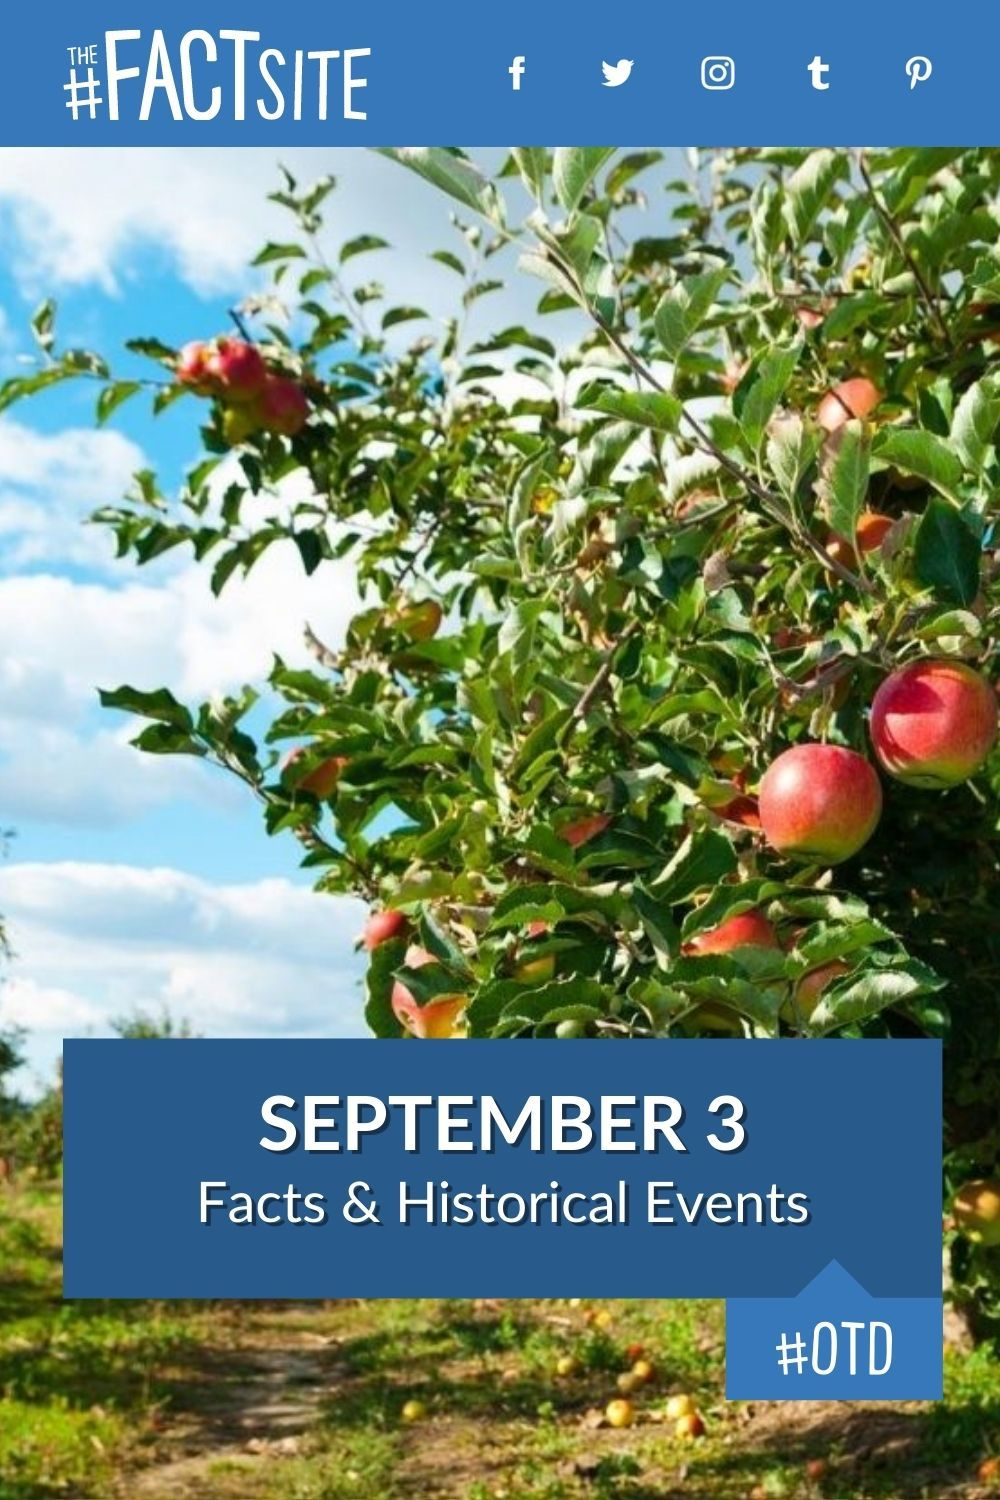 Facts & Historic Events That Happened on September 3